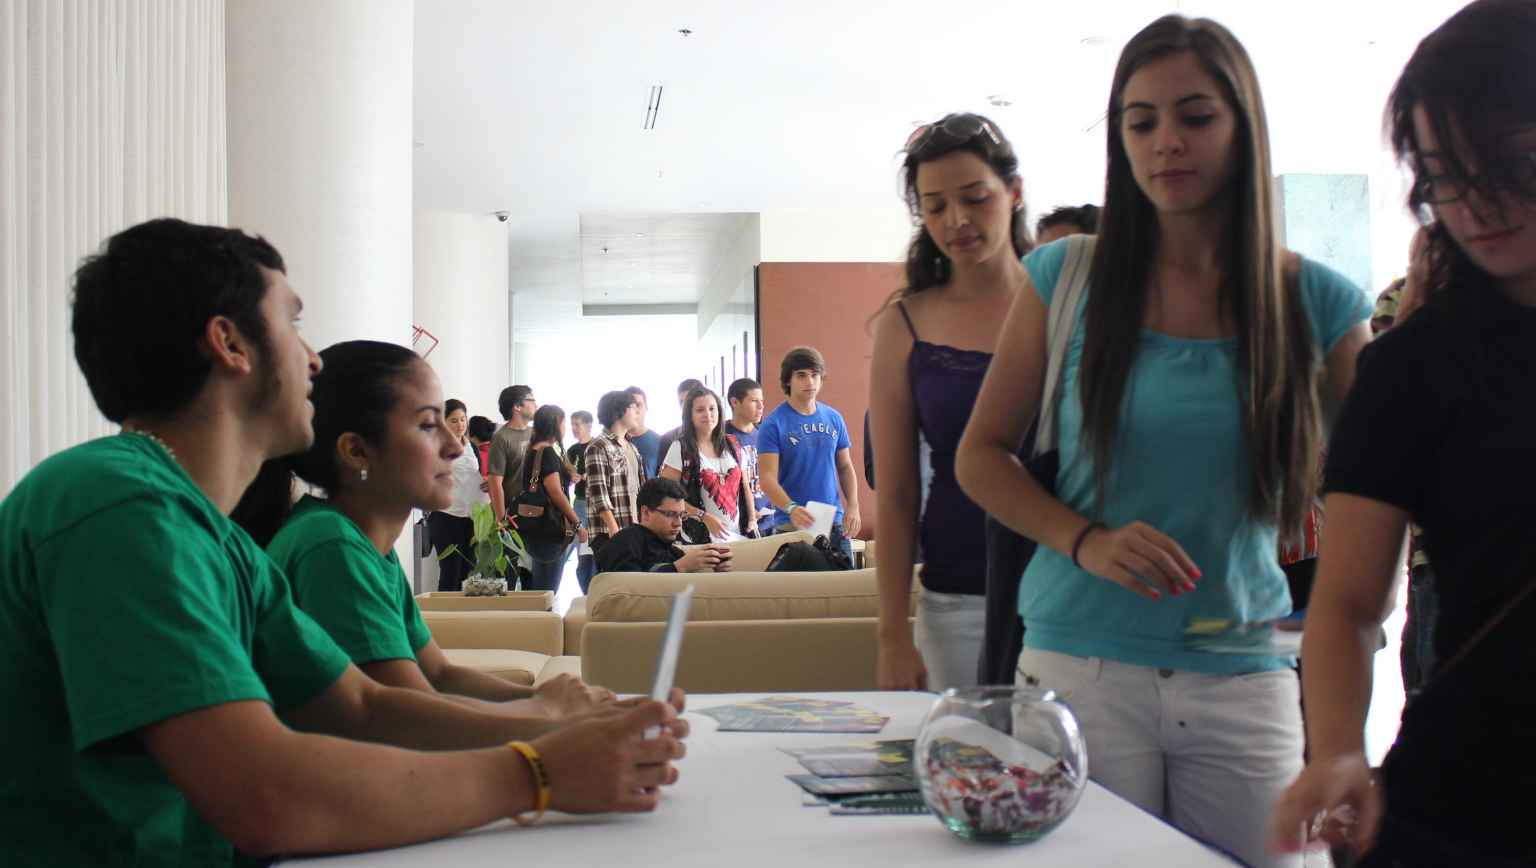 EducationUSA Caracas AVAA Outreach Activities for international students